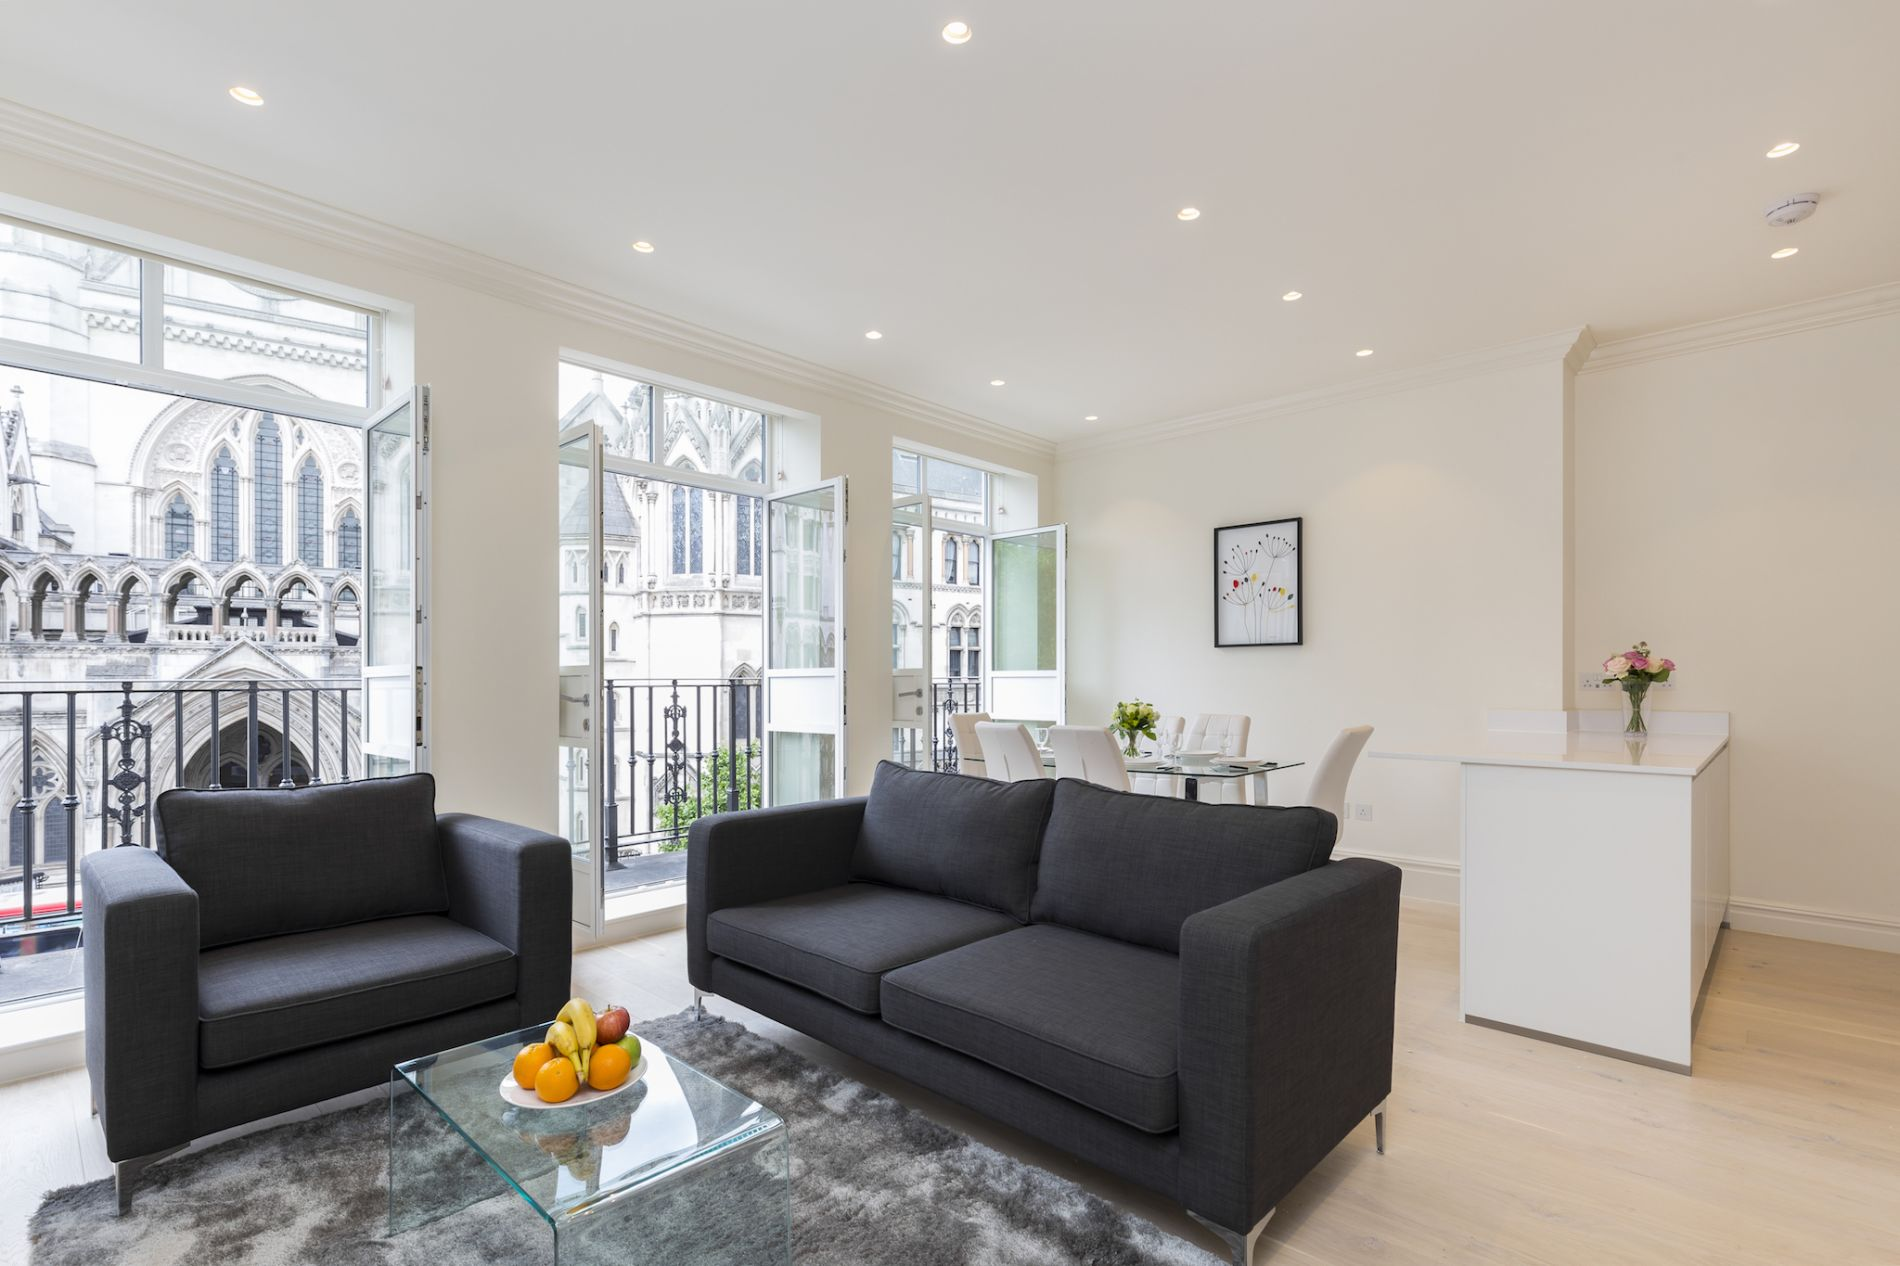 Serviced accommodation with balcony in Covent Garden, London